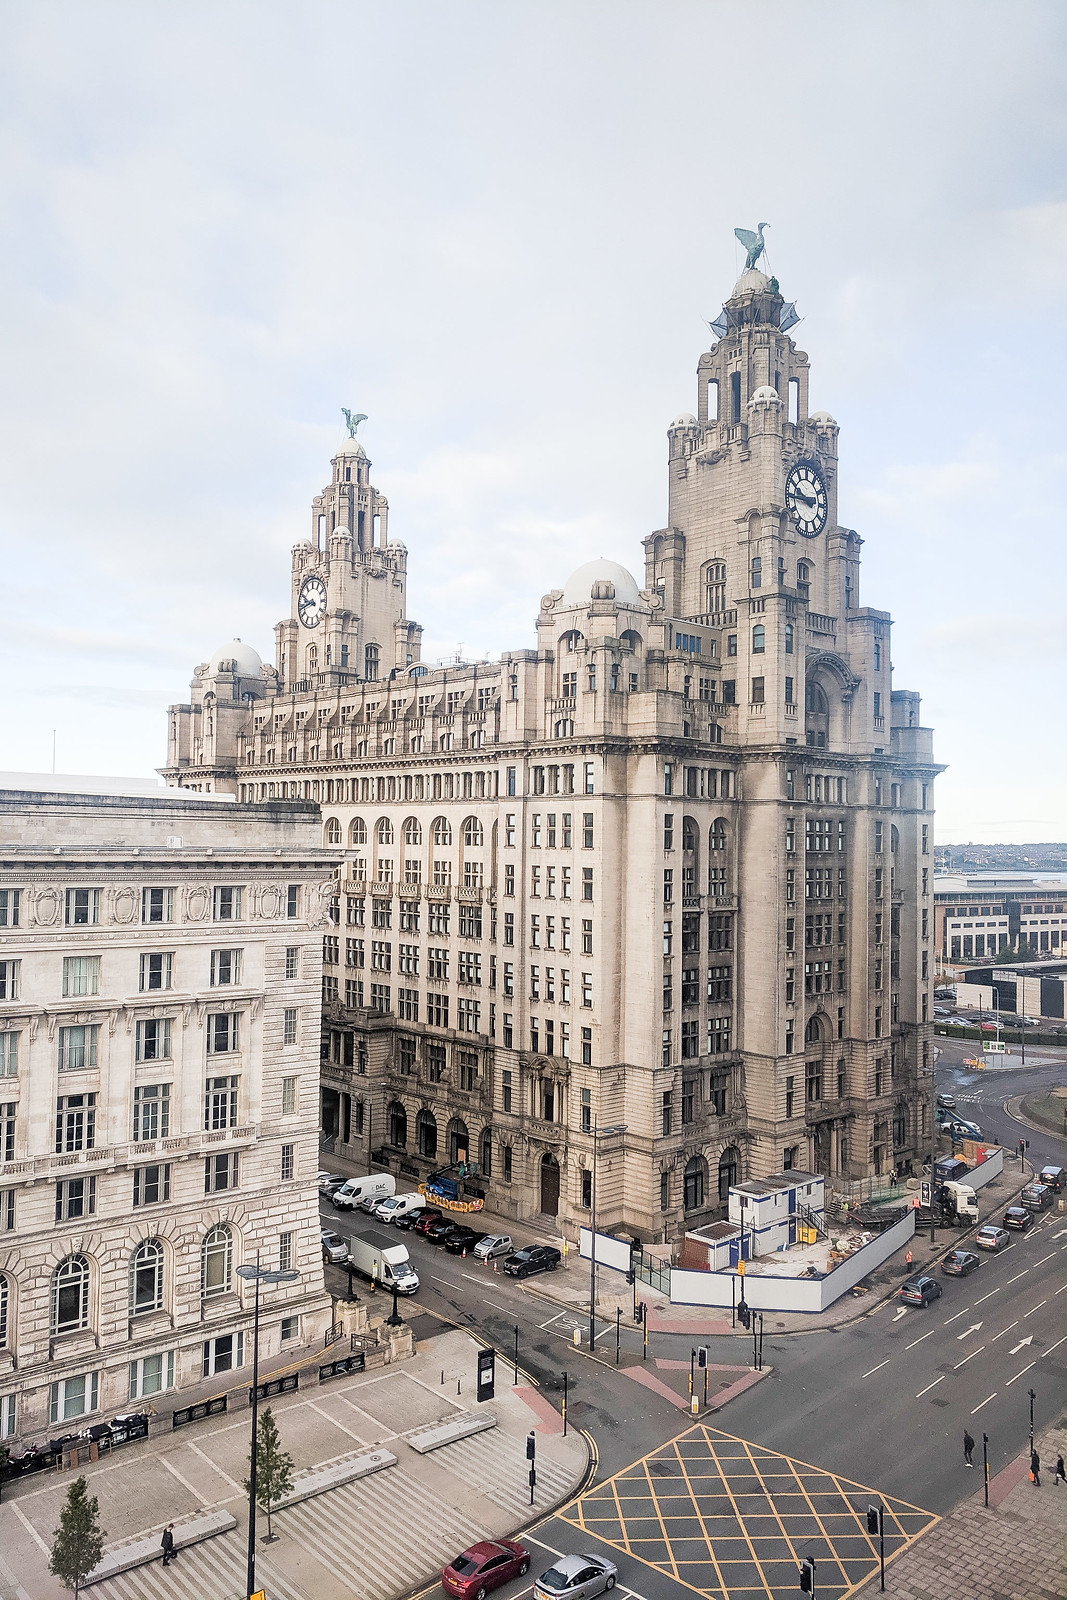 A Slow Travel Guide To Liverpool